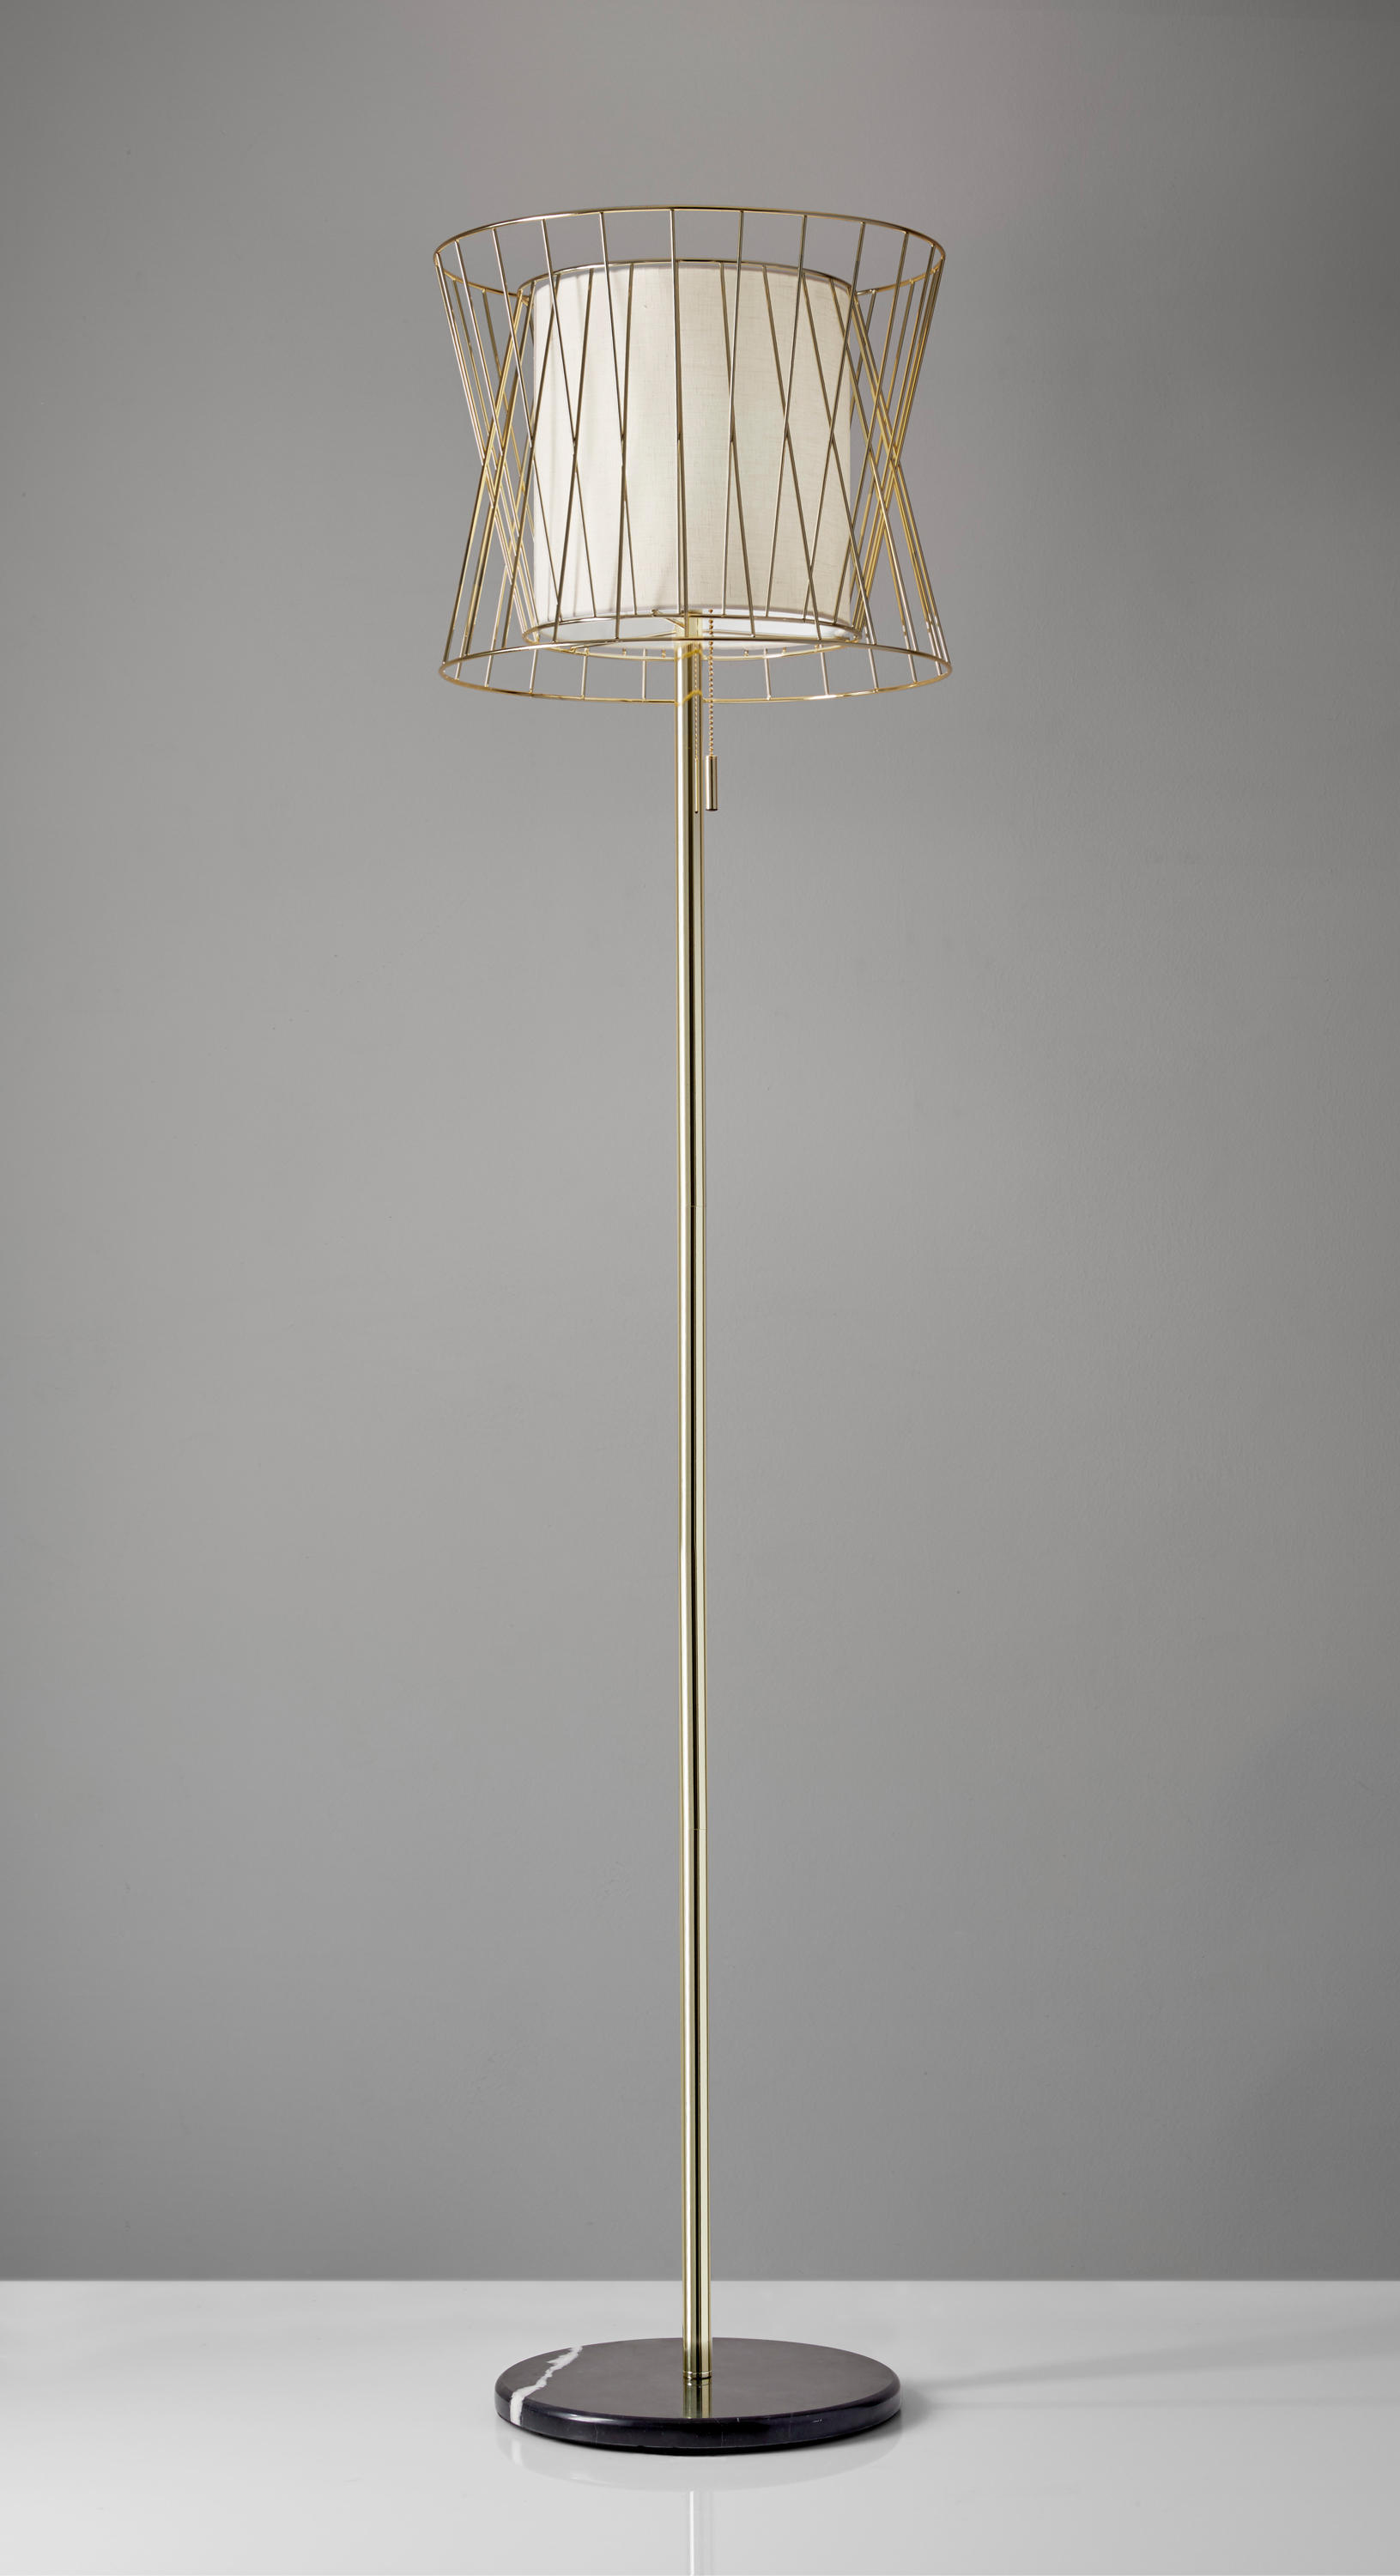 Ambient Floor Lamp Verona Table Lamp General Lighting From Ads360 Architonic